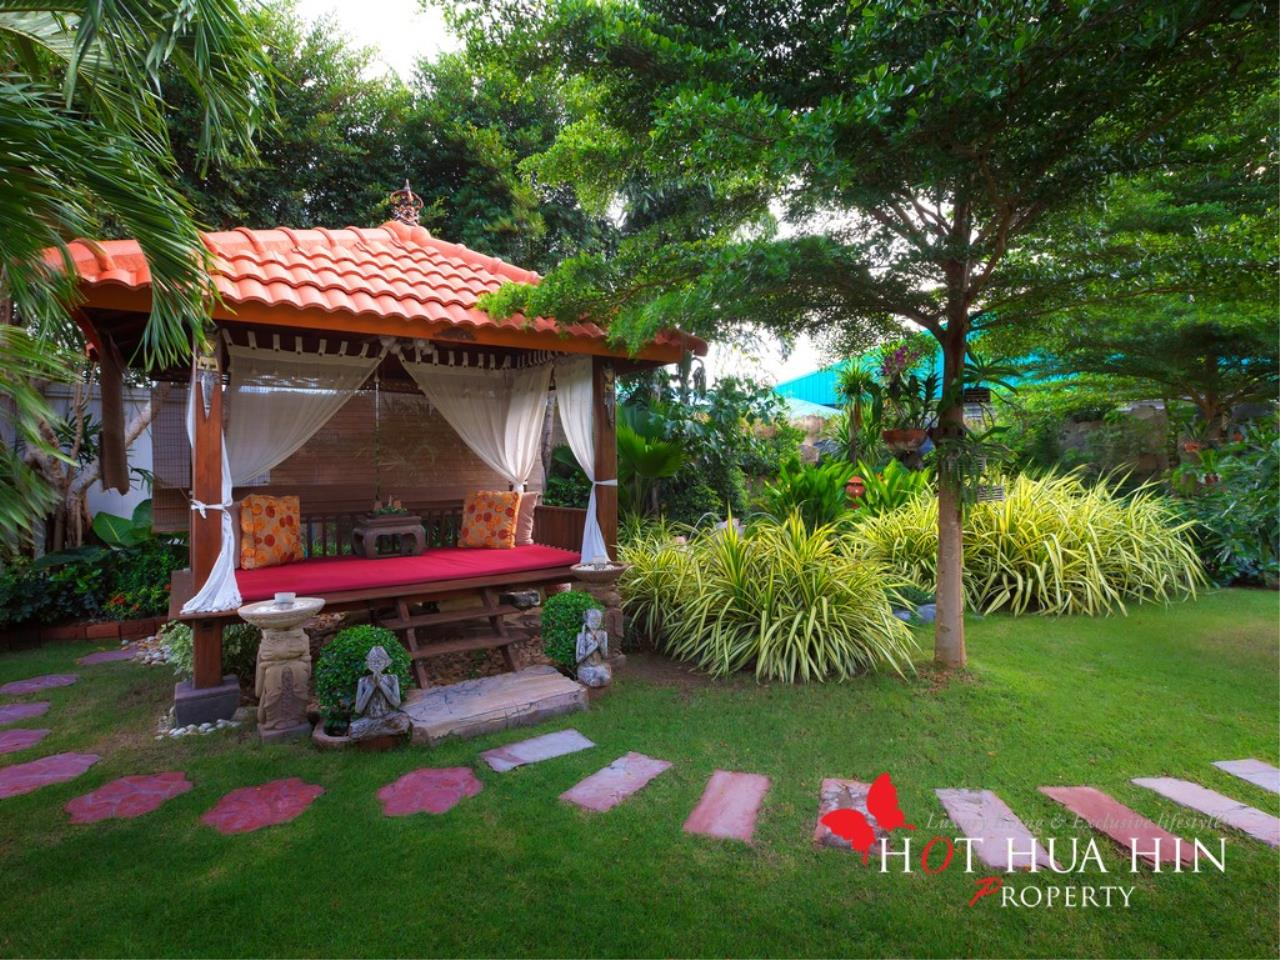 Hot Hua Hin Co. Ltd. Agency's Well Built Home With Stunning Gardens And Two Full Kitchens 35